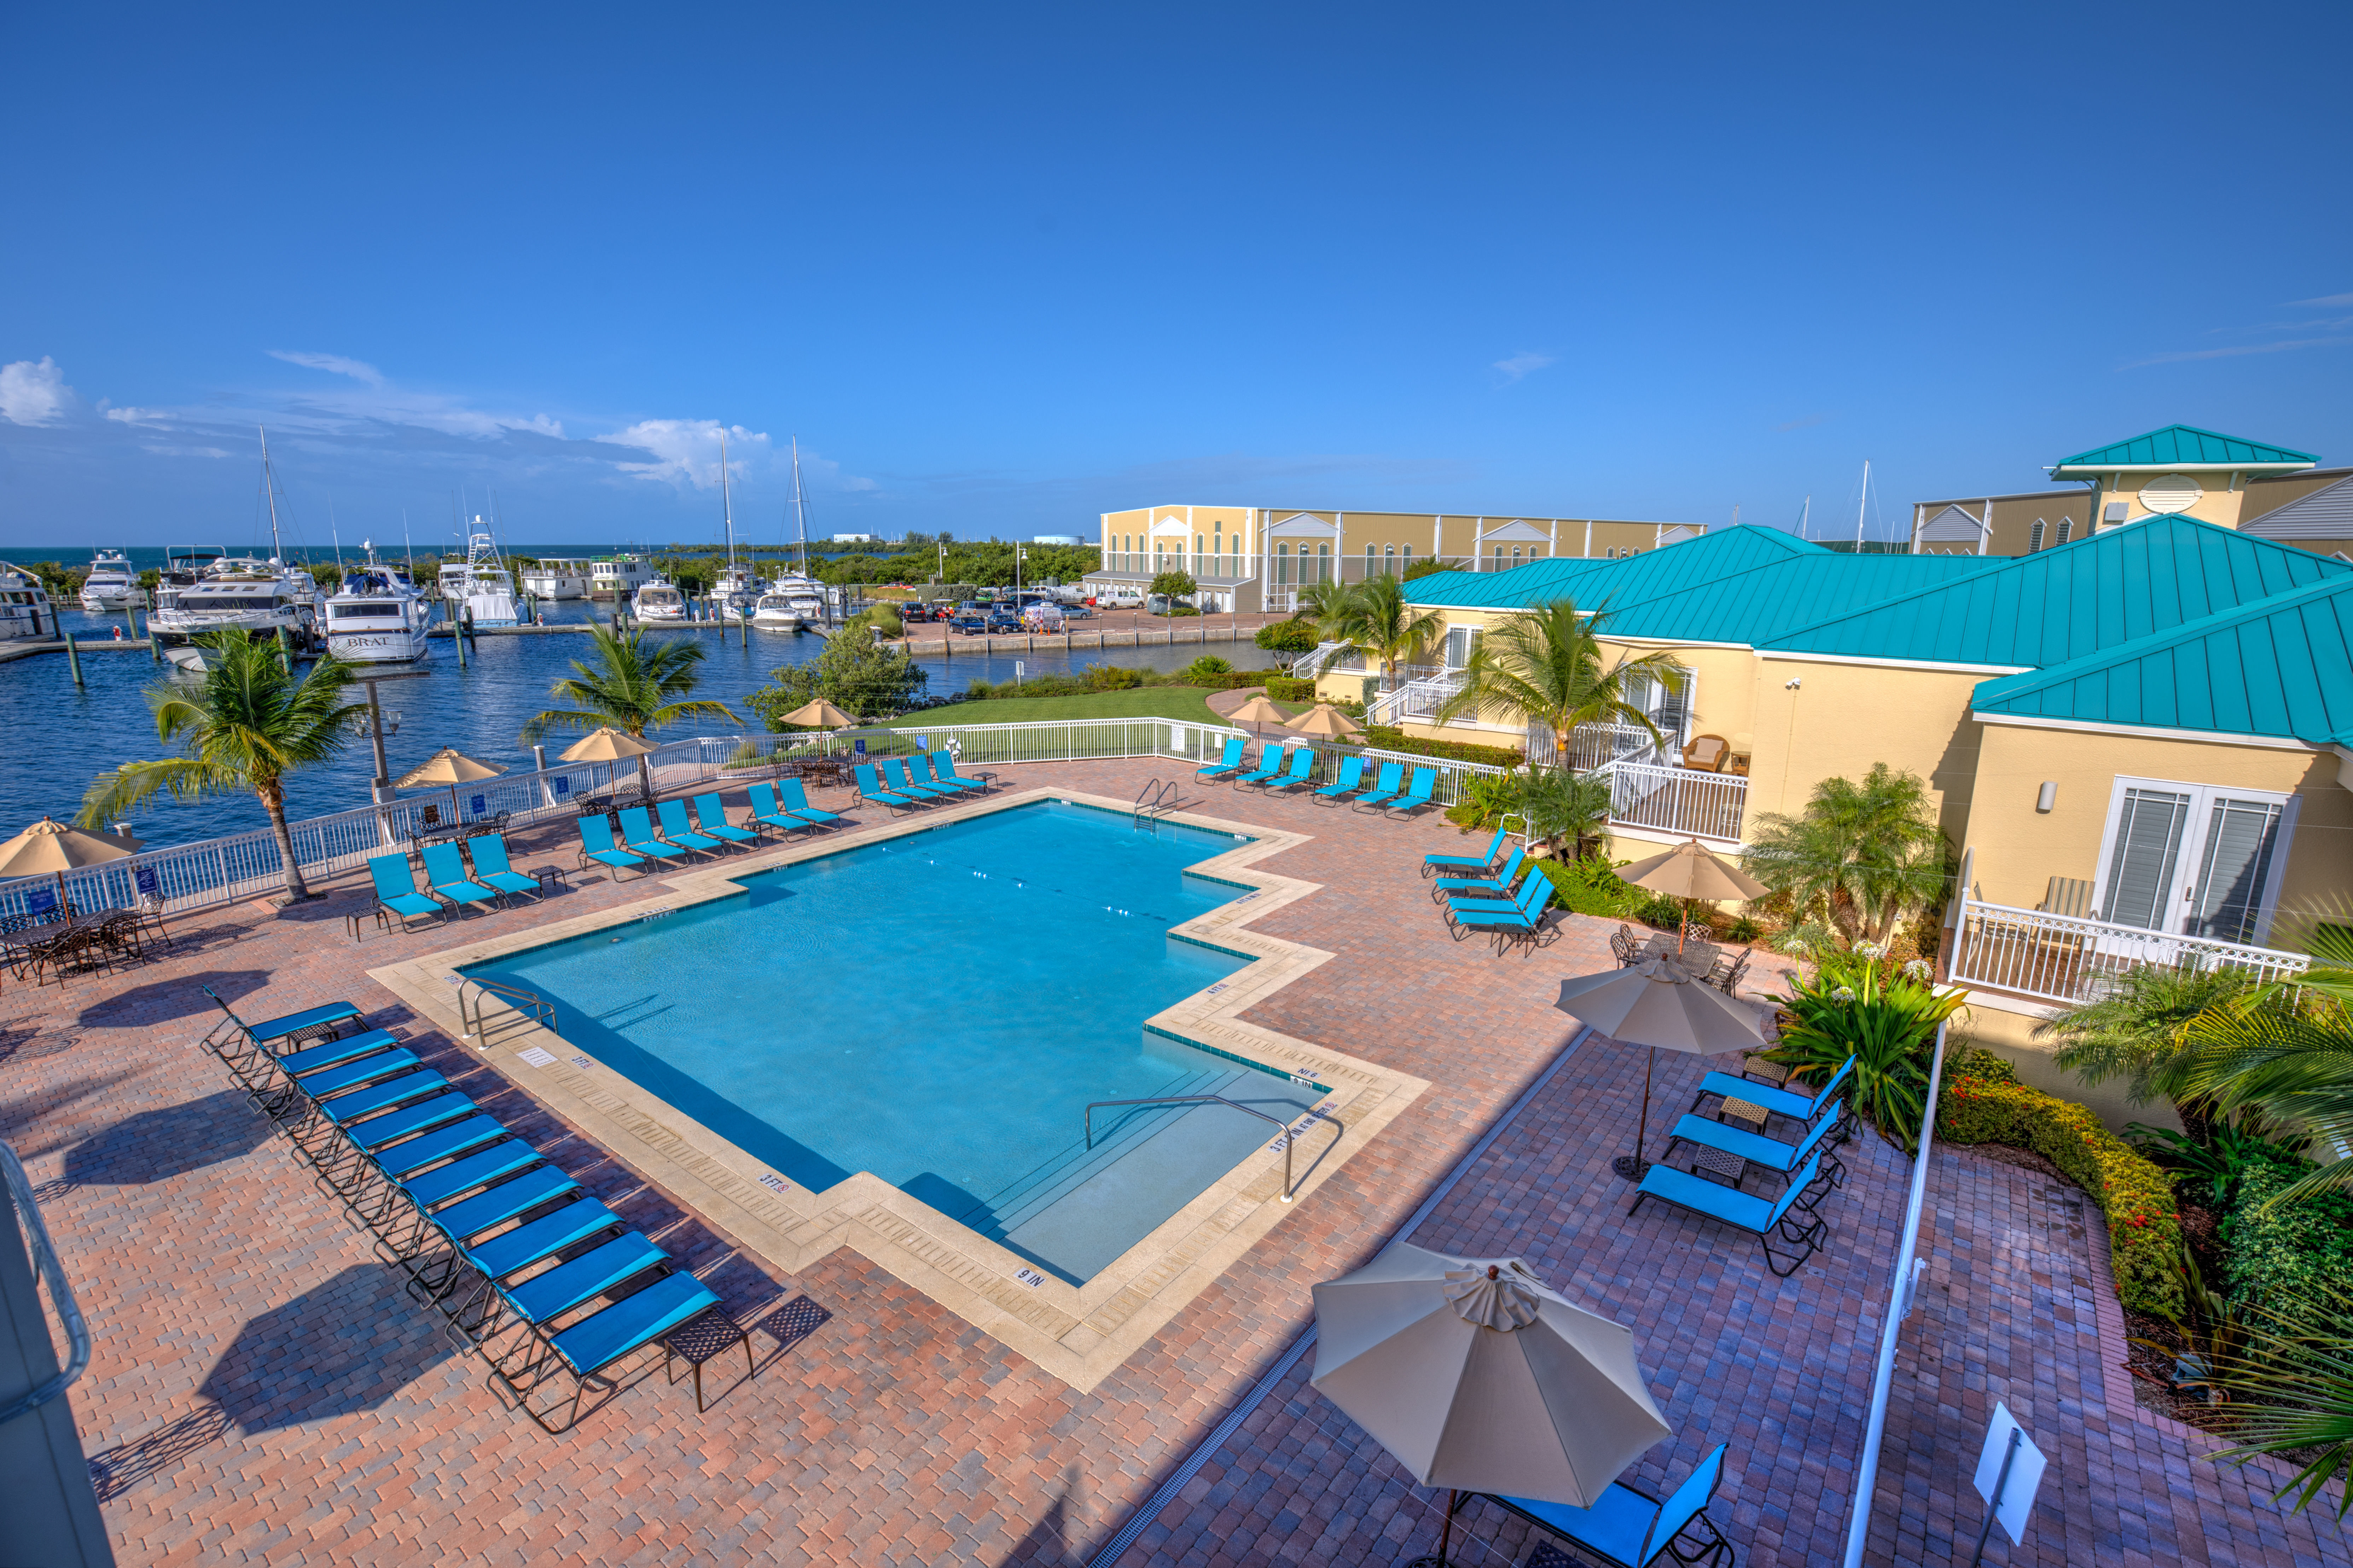 Sugarloaf Key / Key West KOA is located in Sugarloaf Key, Florida and offers great camping sites!